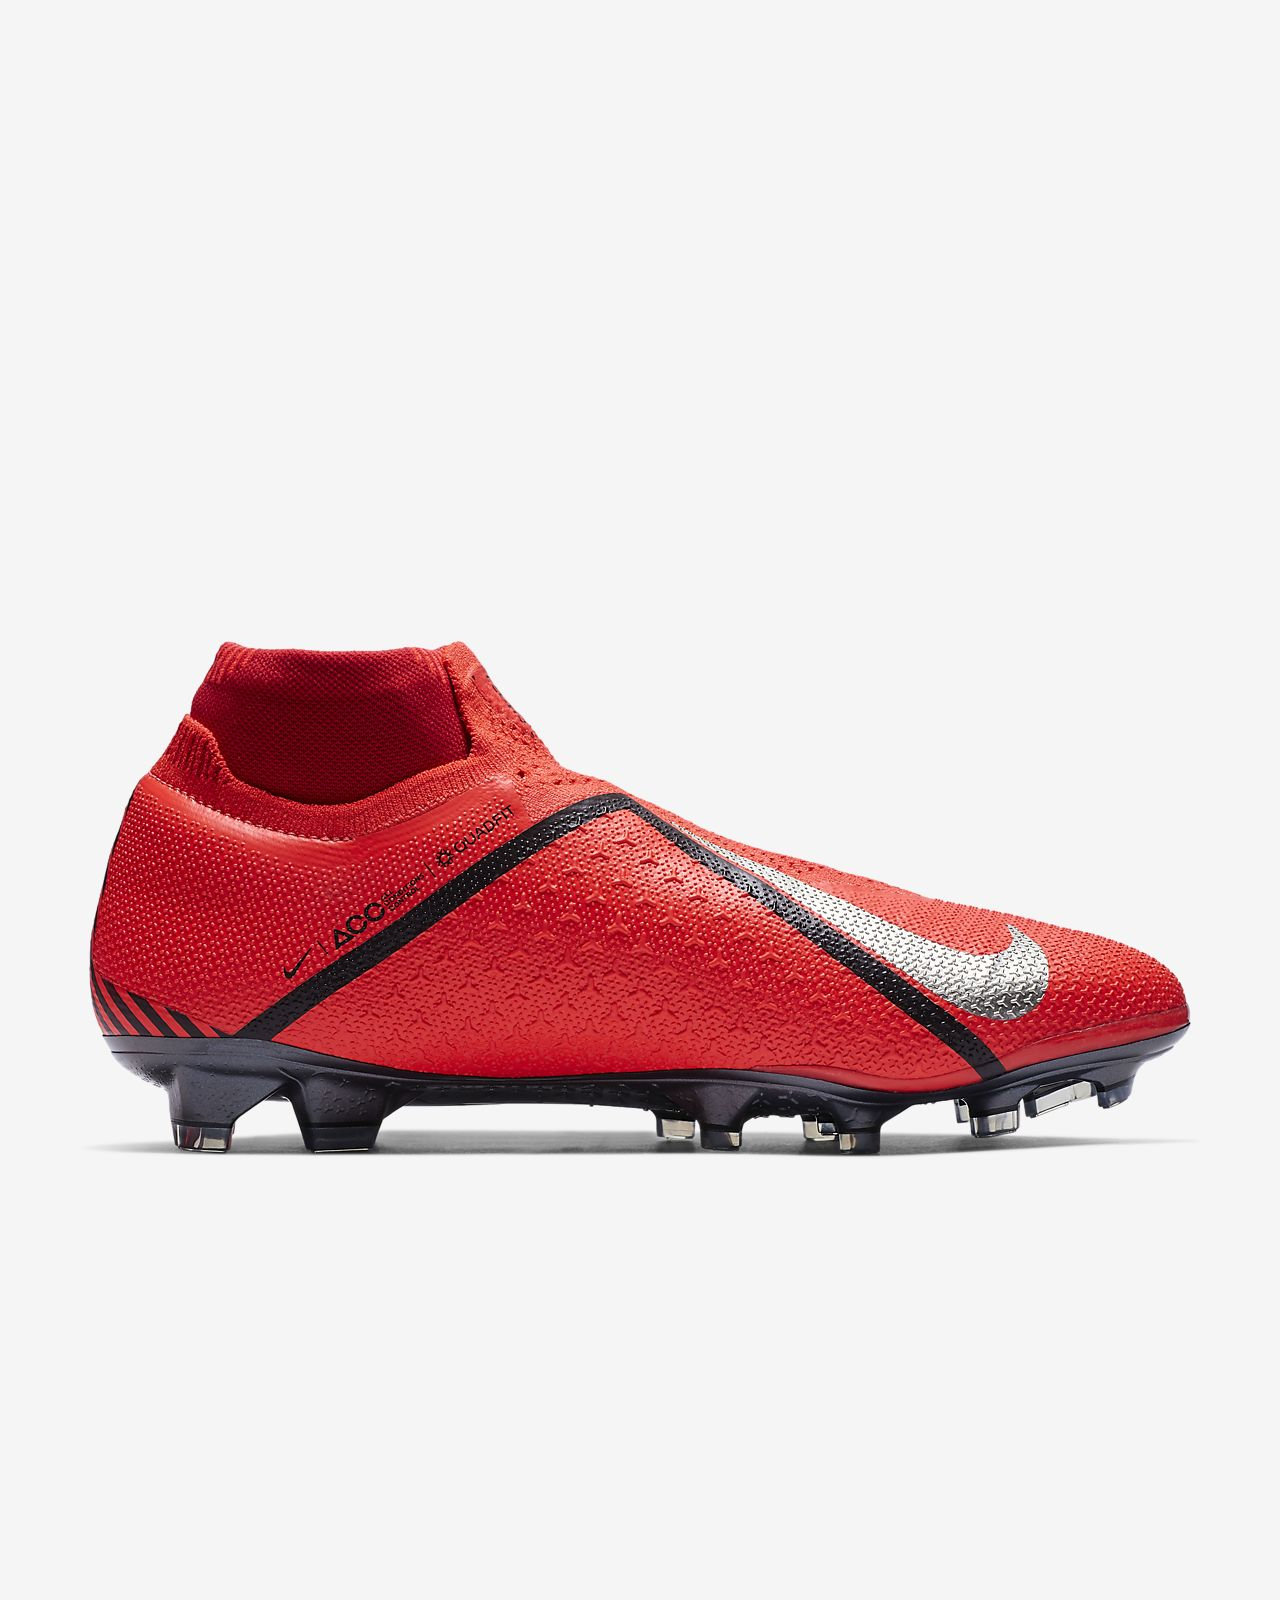 57633e69a8d ... Nike PhantomVSN Elite Dynamic Fit Game Over FG Firm-Ground Football Boot